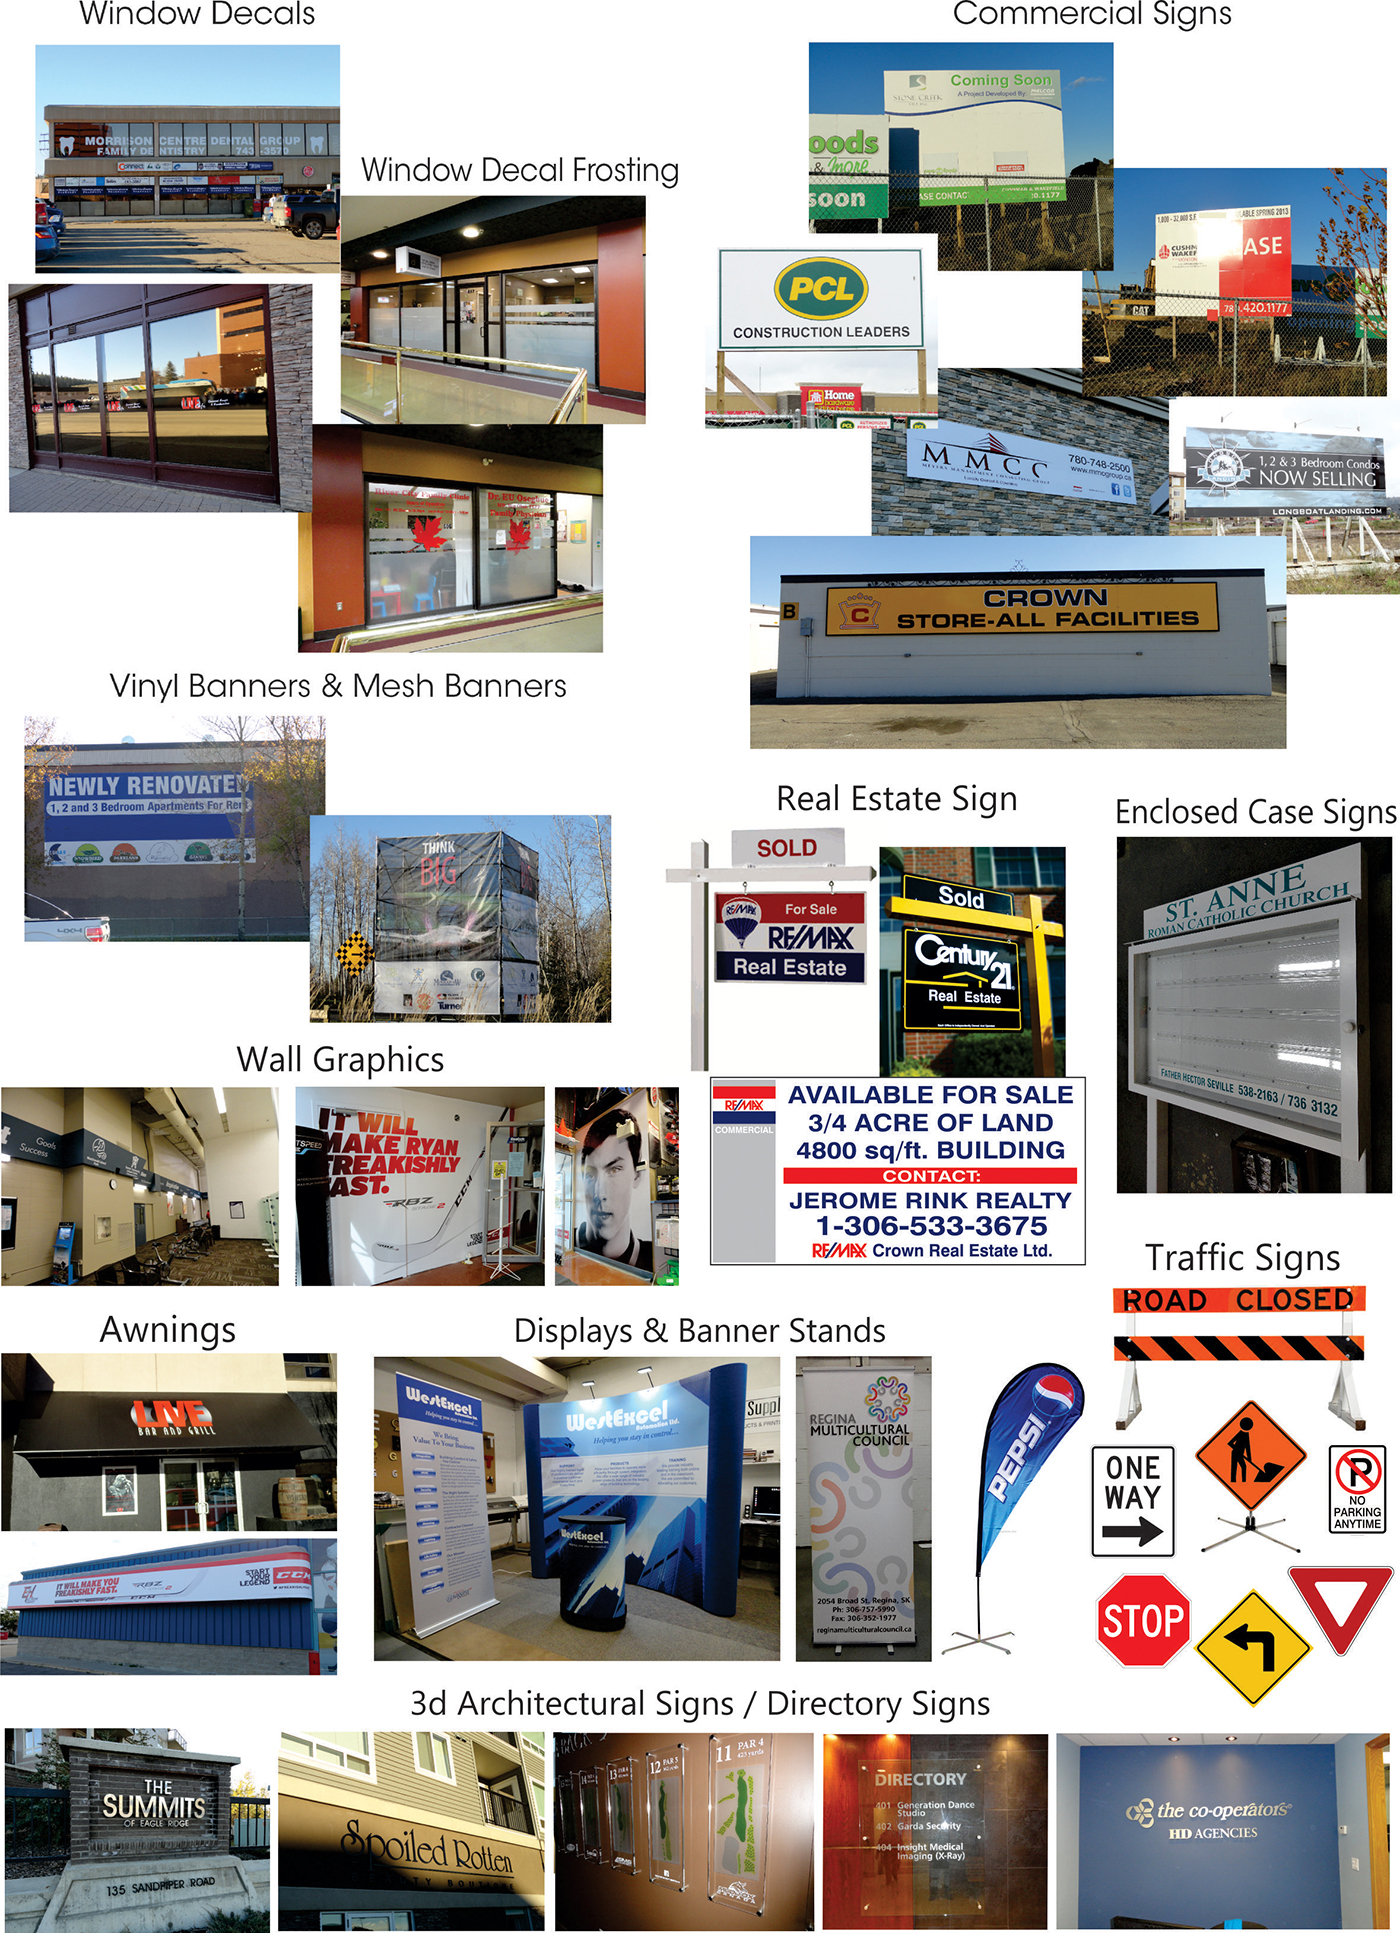 CommercialSigns